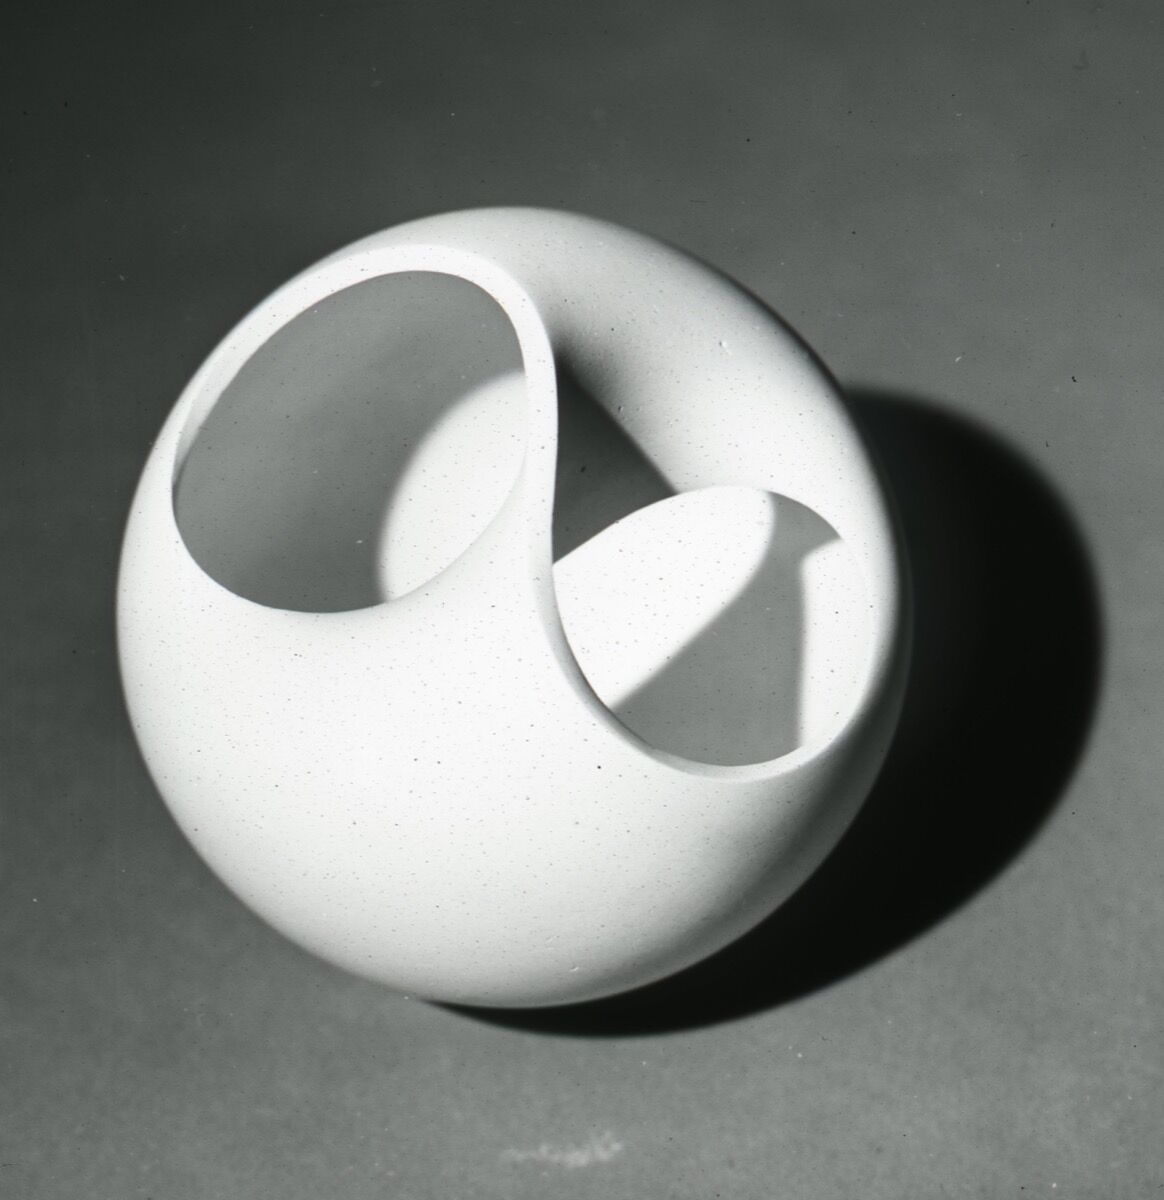 Non-orientable surface, 1956/57, plaster. Photo byWolfgang Siol. Courtesy of HfG-Archiv/Ulmer Museum.